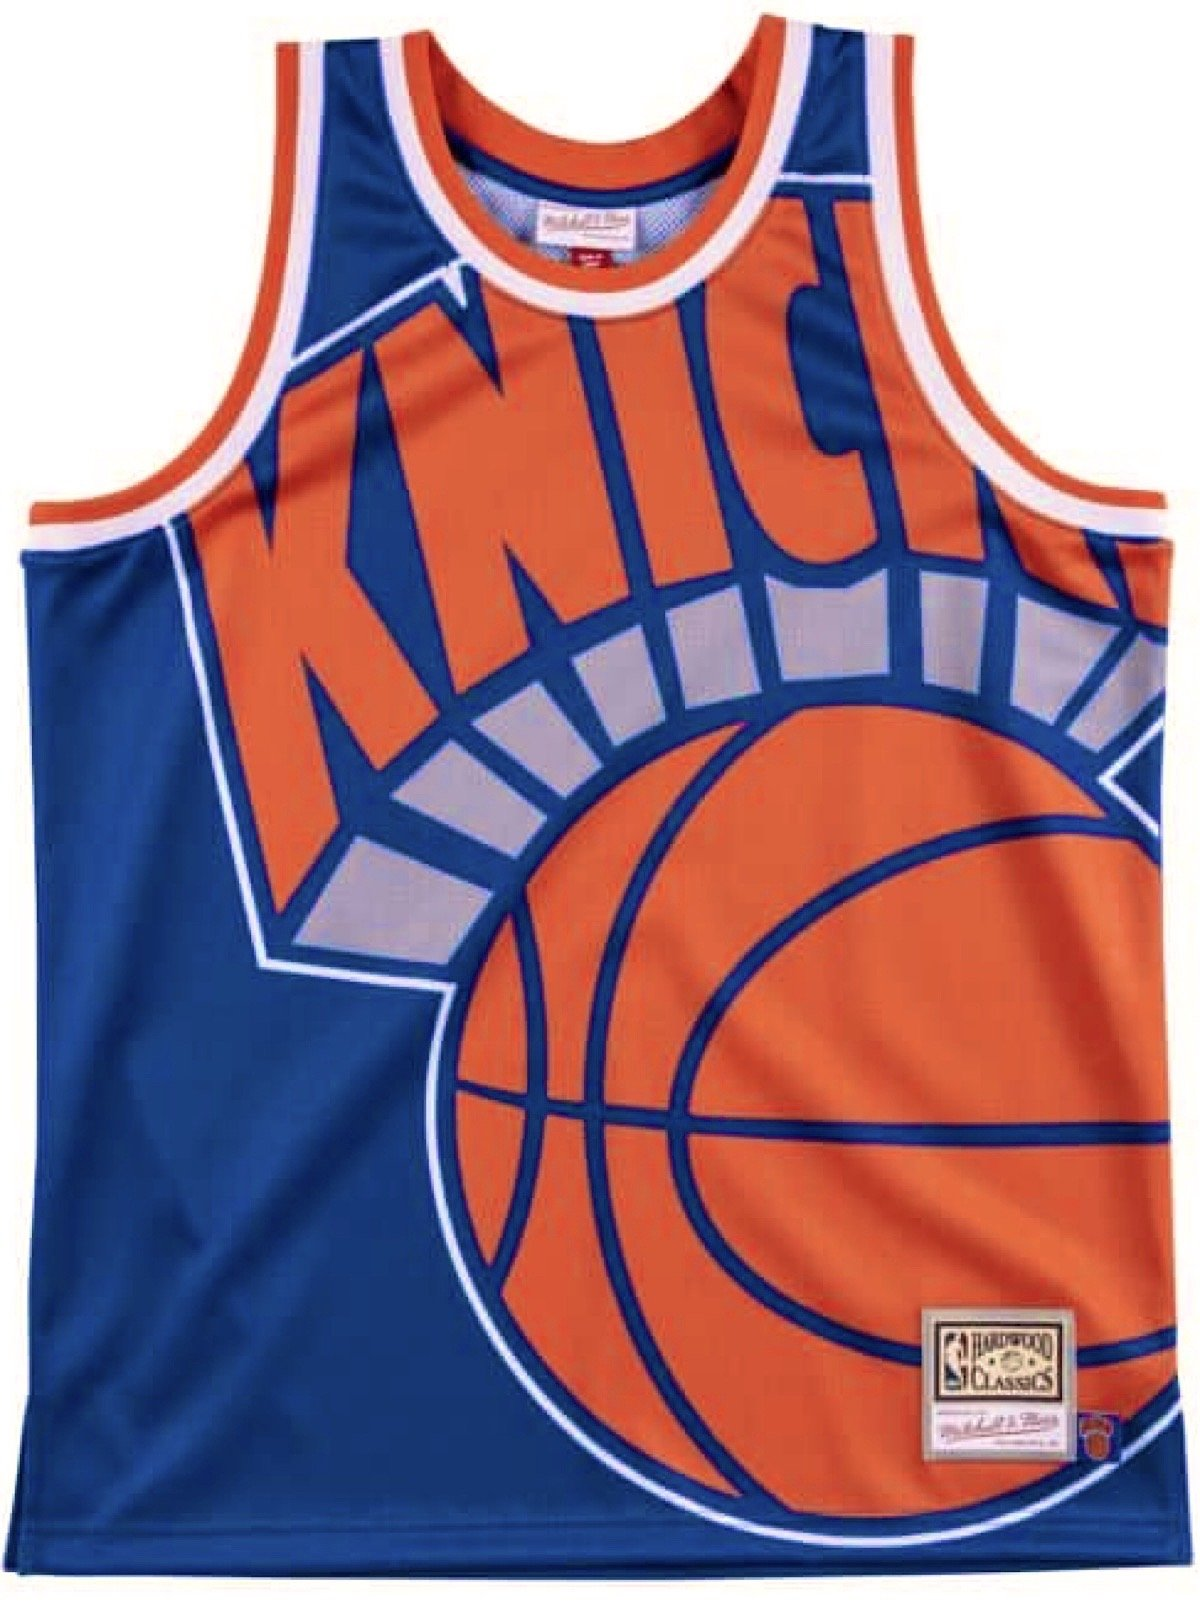 Mitchell & Ness Jersey - NBA Big Face Knicks - Blue and Orange